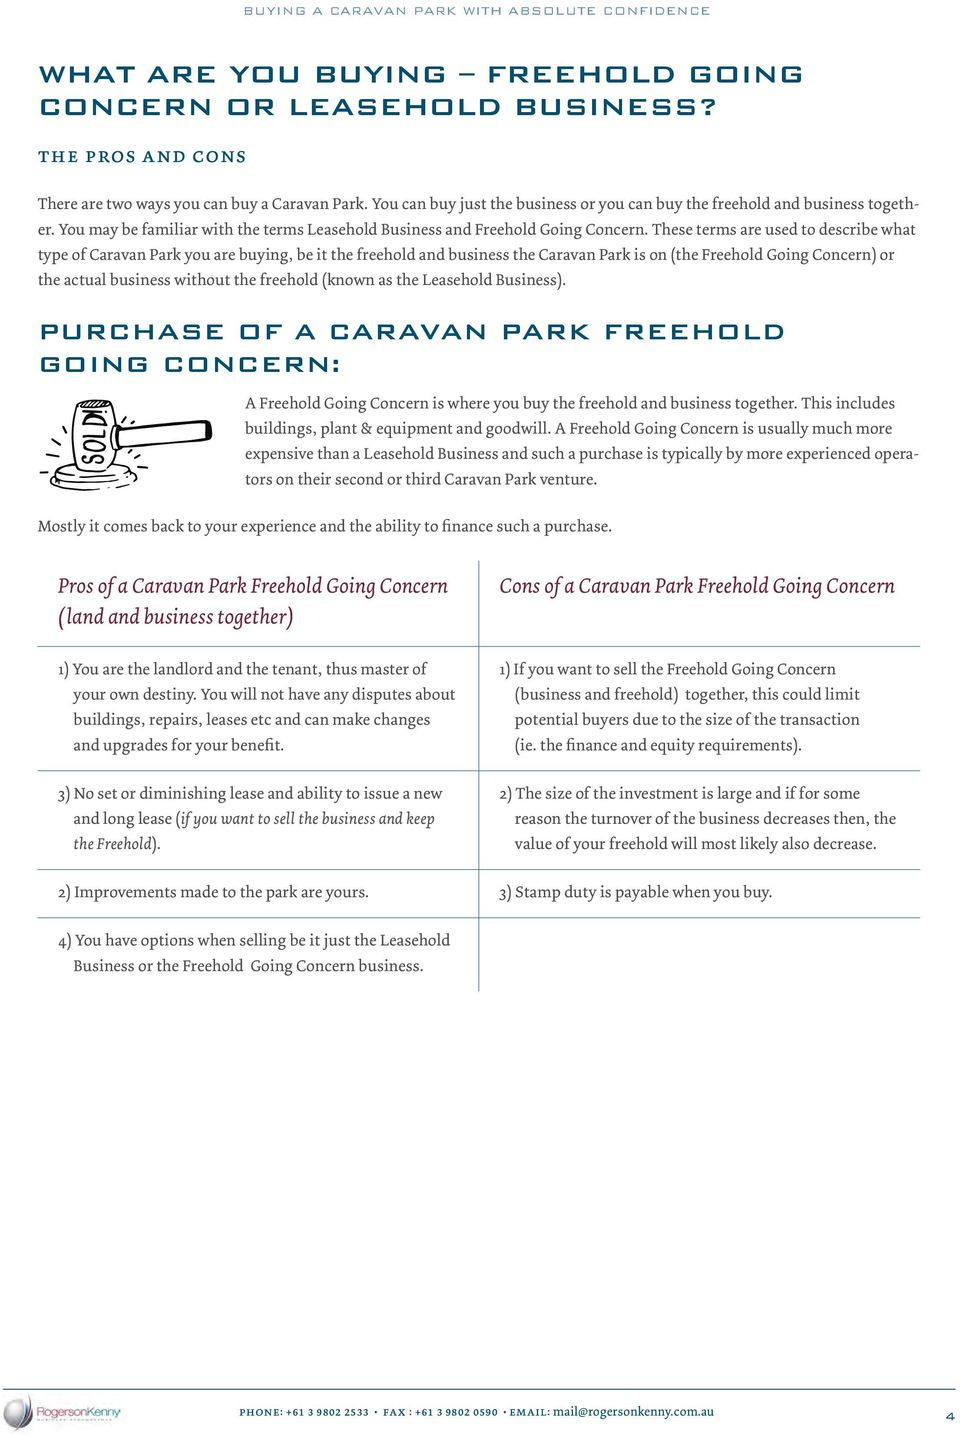 These terms are used to describe what type of Caravan Park you are buying, be it the freehold and business the Caravan Park is on (the Freehold Going Concern) or the actual business without the